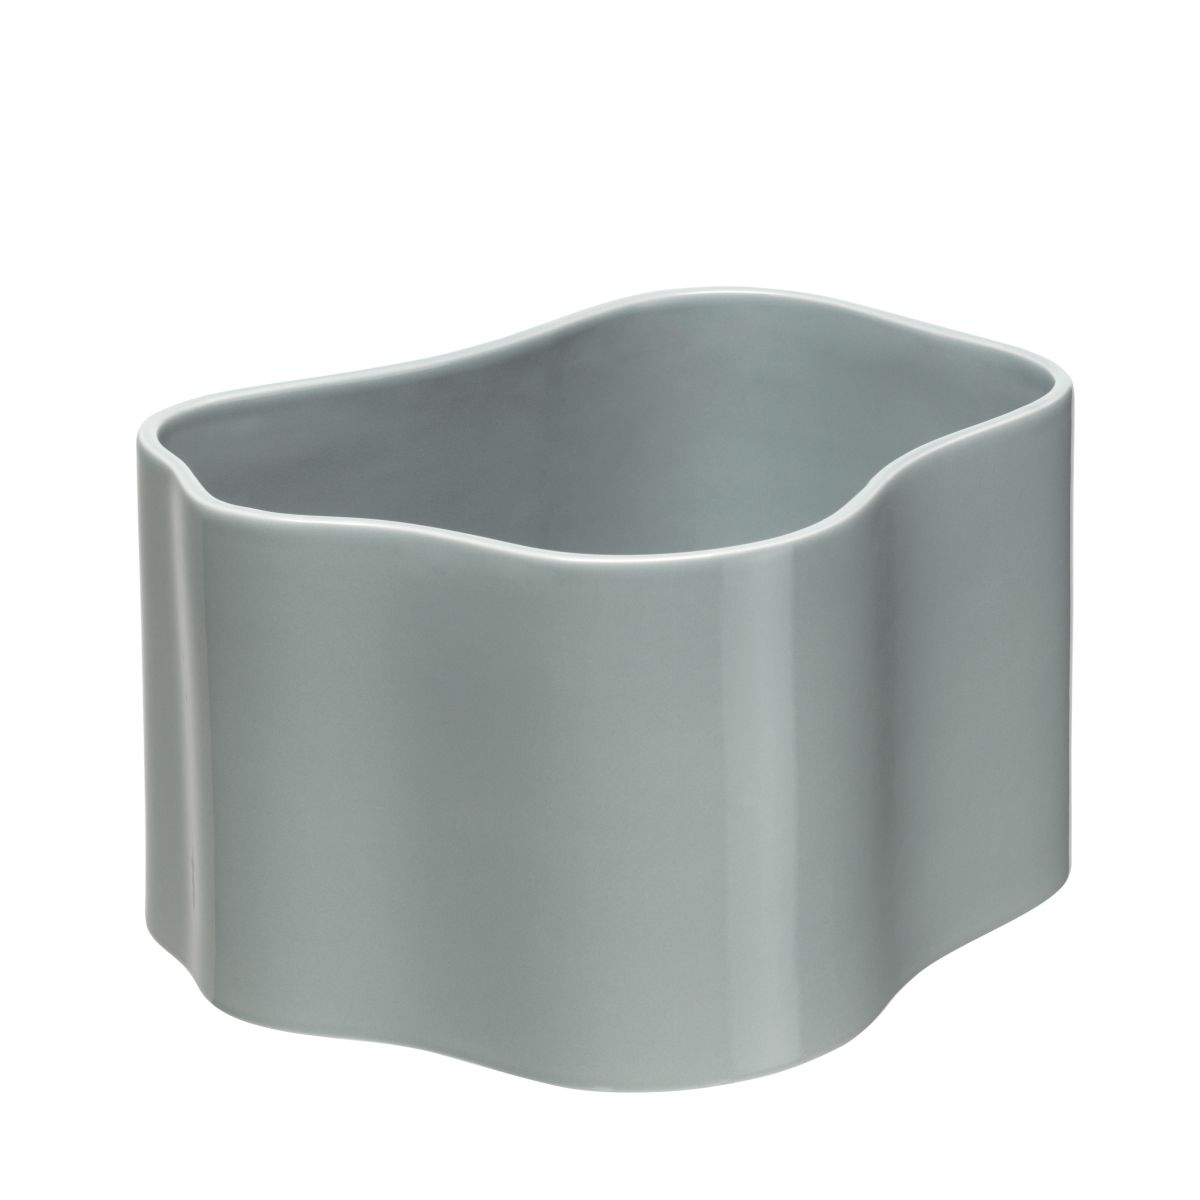 Plant pot shape B, size M, Light grey gloss_F